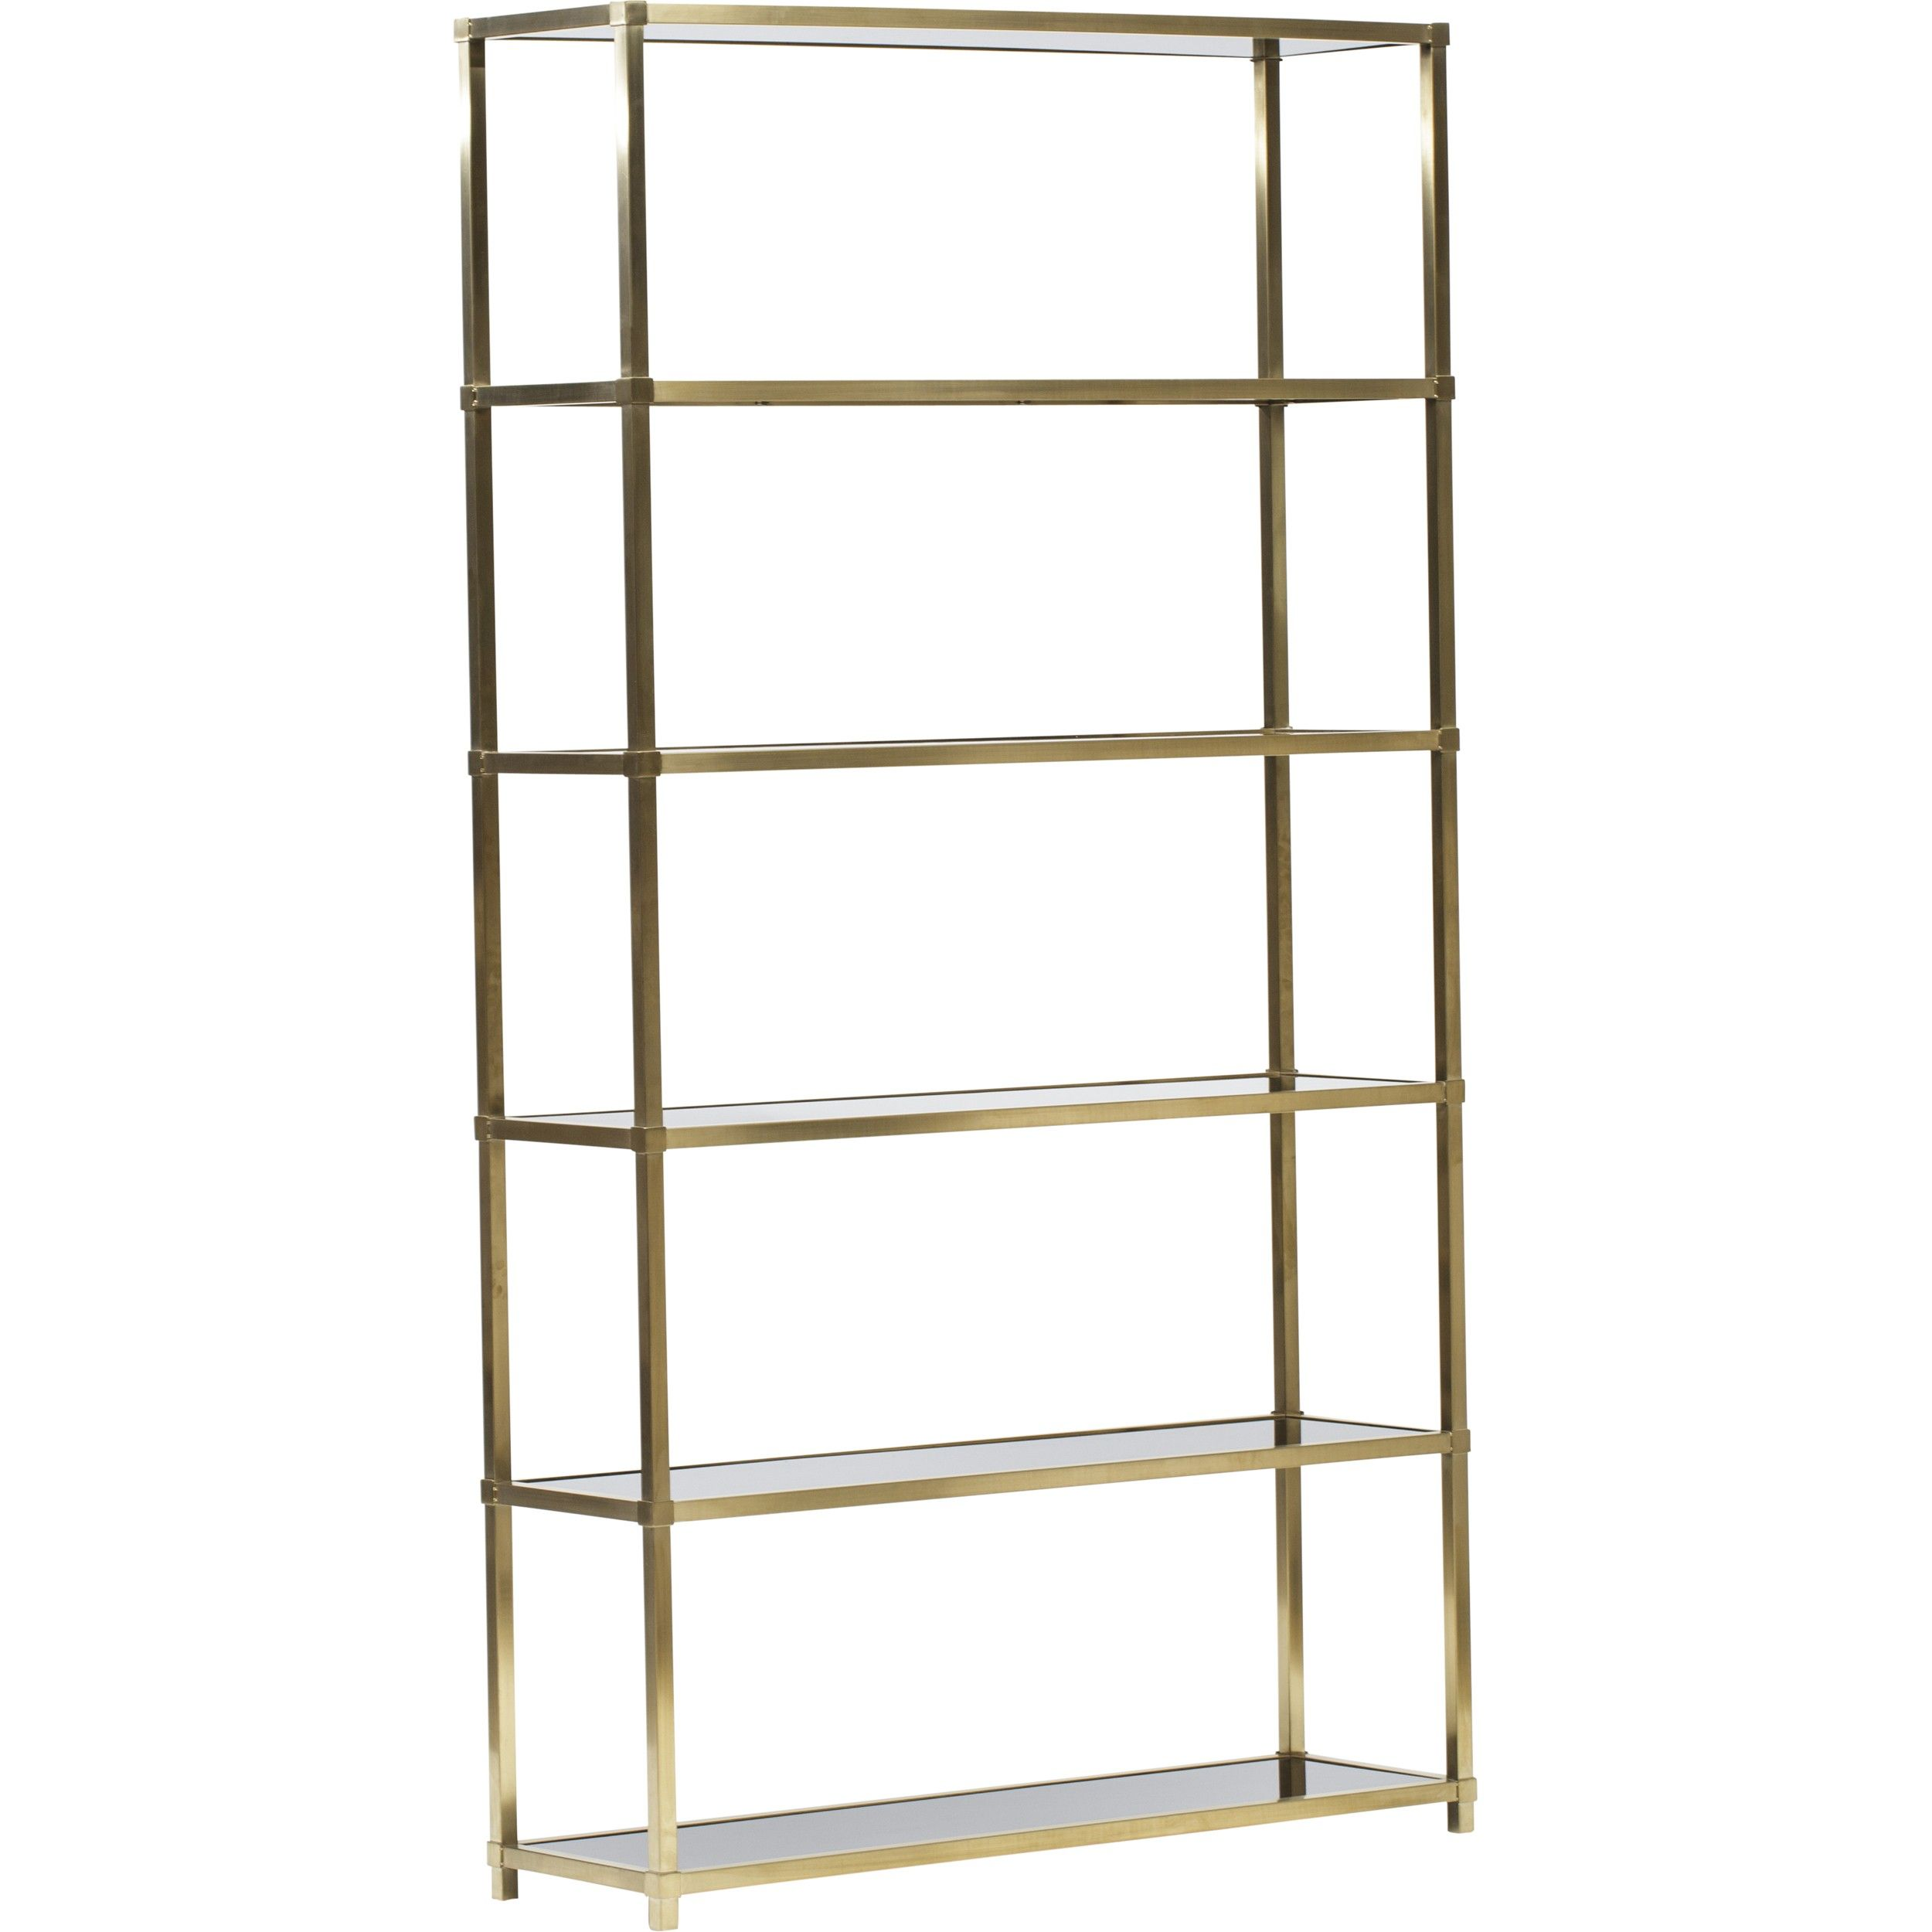 Benton Etagere Brass With Mahogany Black Solid Shelves 48w 14d 88h.  Furniture StorageHome FurnitureModern ...